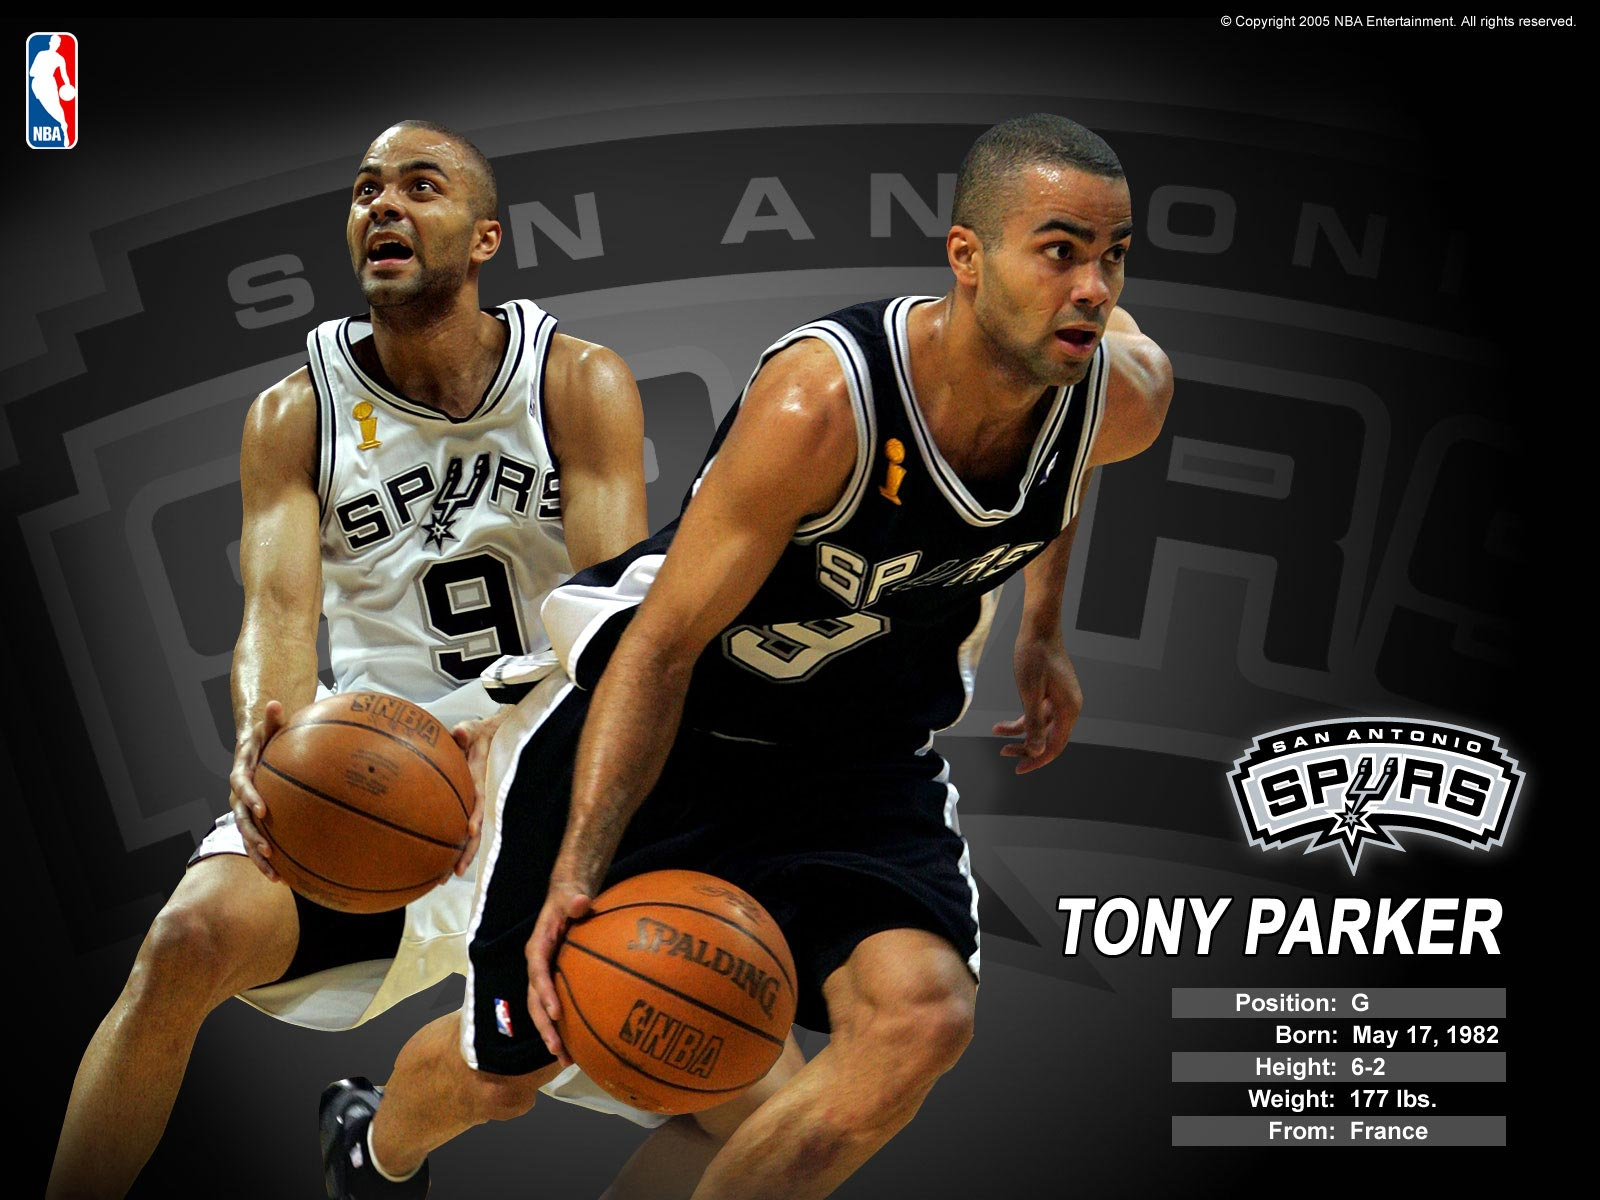 tony parker spurs san antonio ball Spurs basketball nba